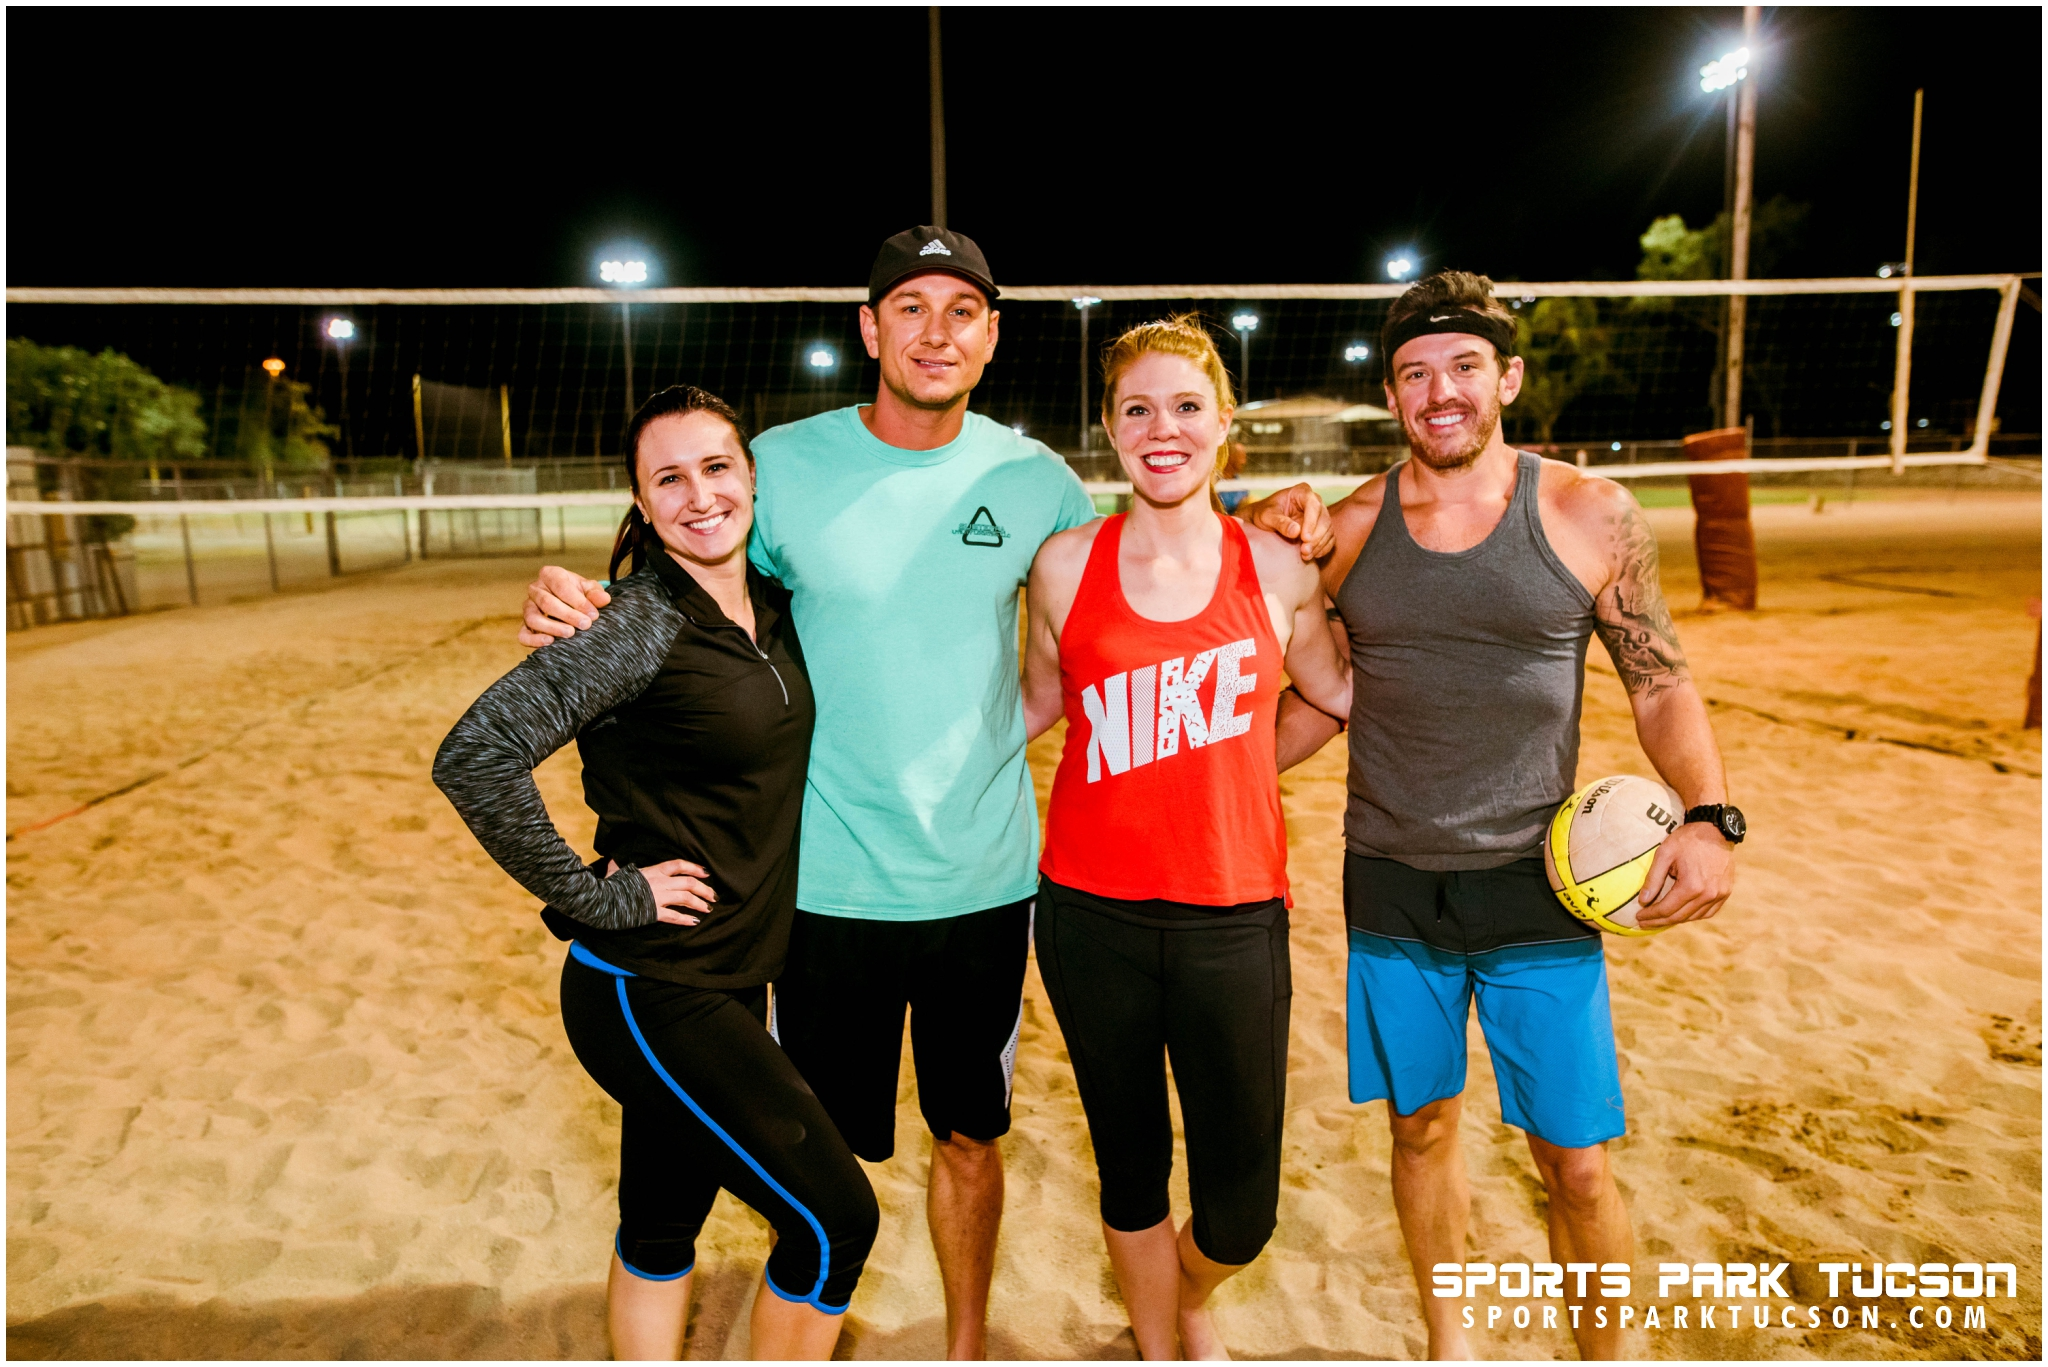 Volleyball Wed Co-ed 4 v 4 - Gold, Team: Wolfing Hard